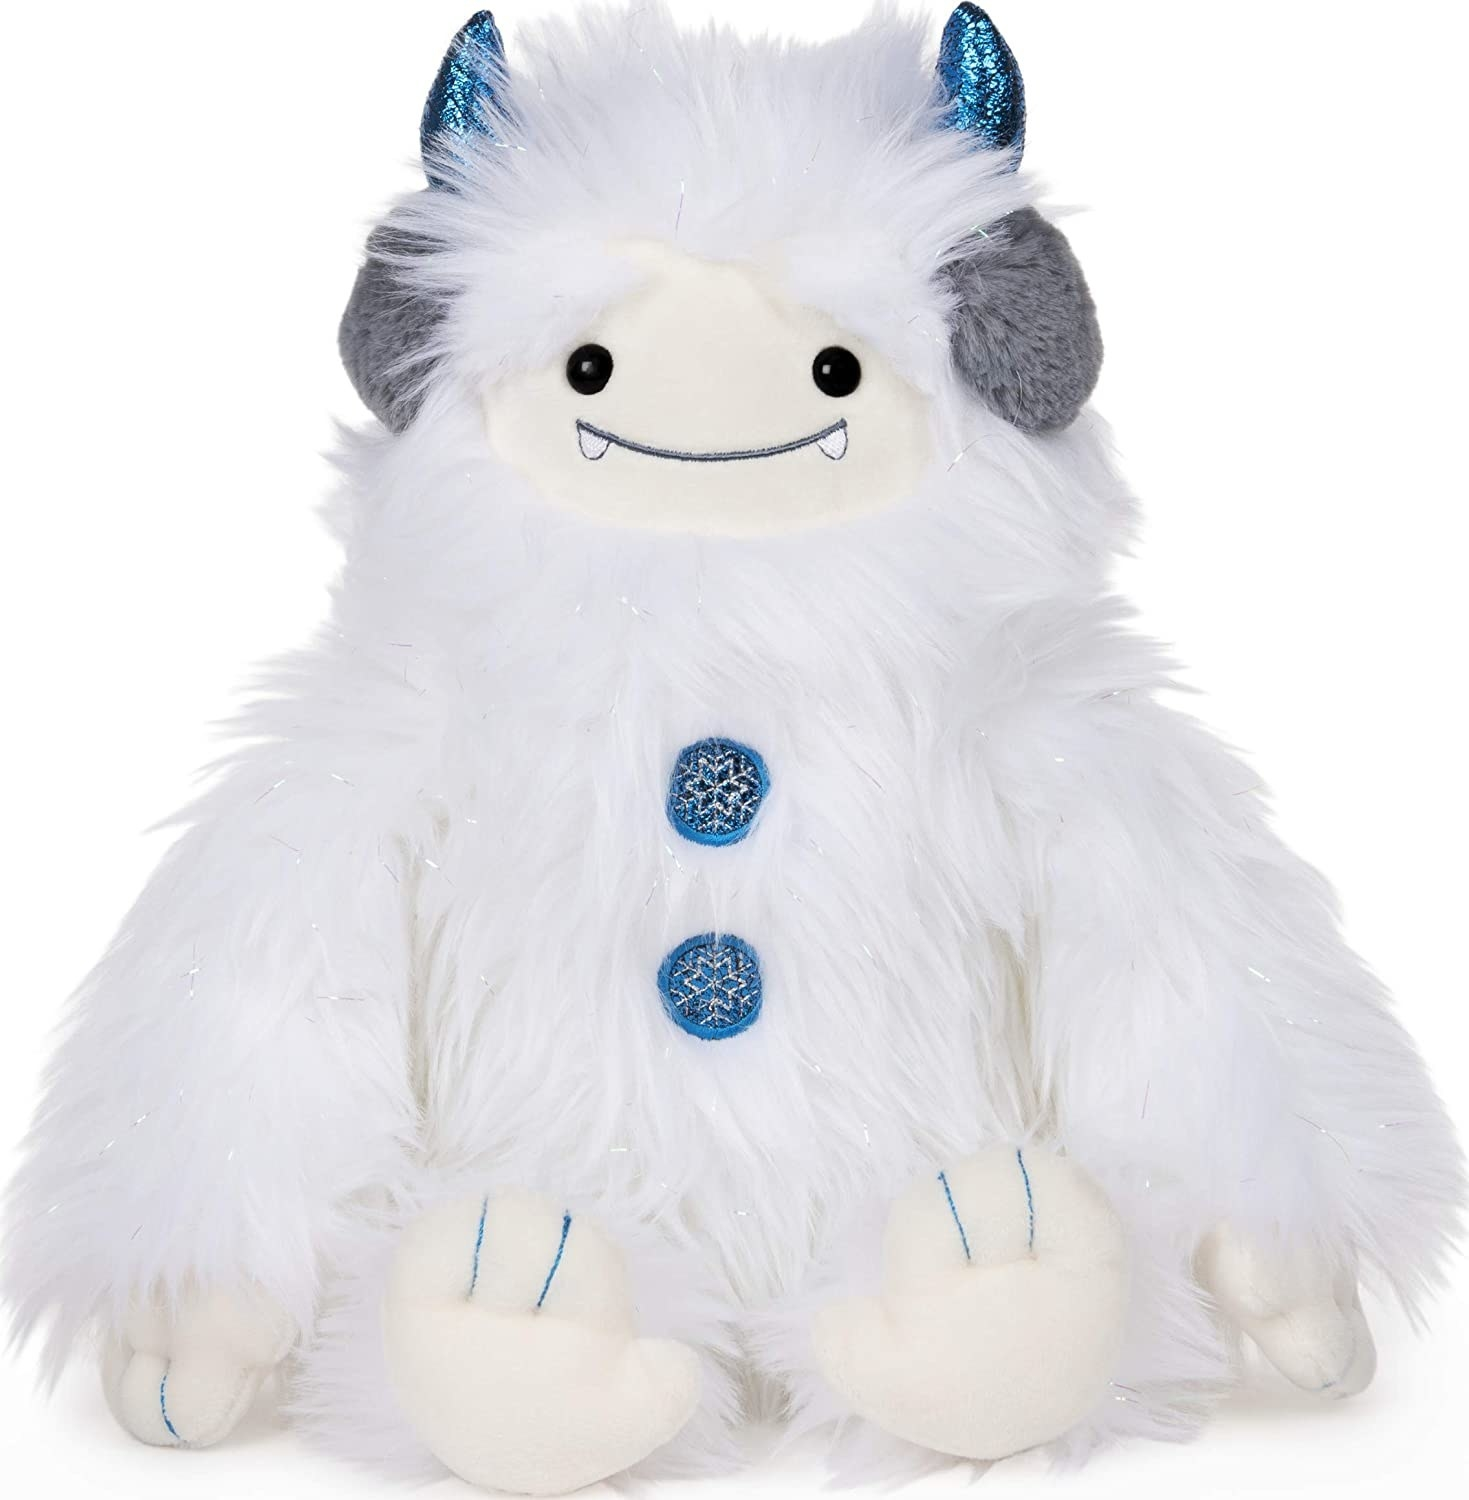 A furry white stuffed yeti doll with blue horns and buttons